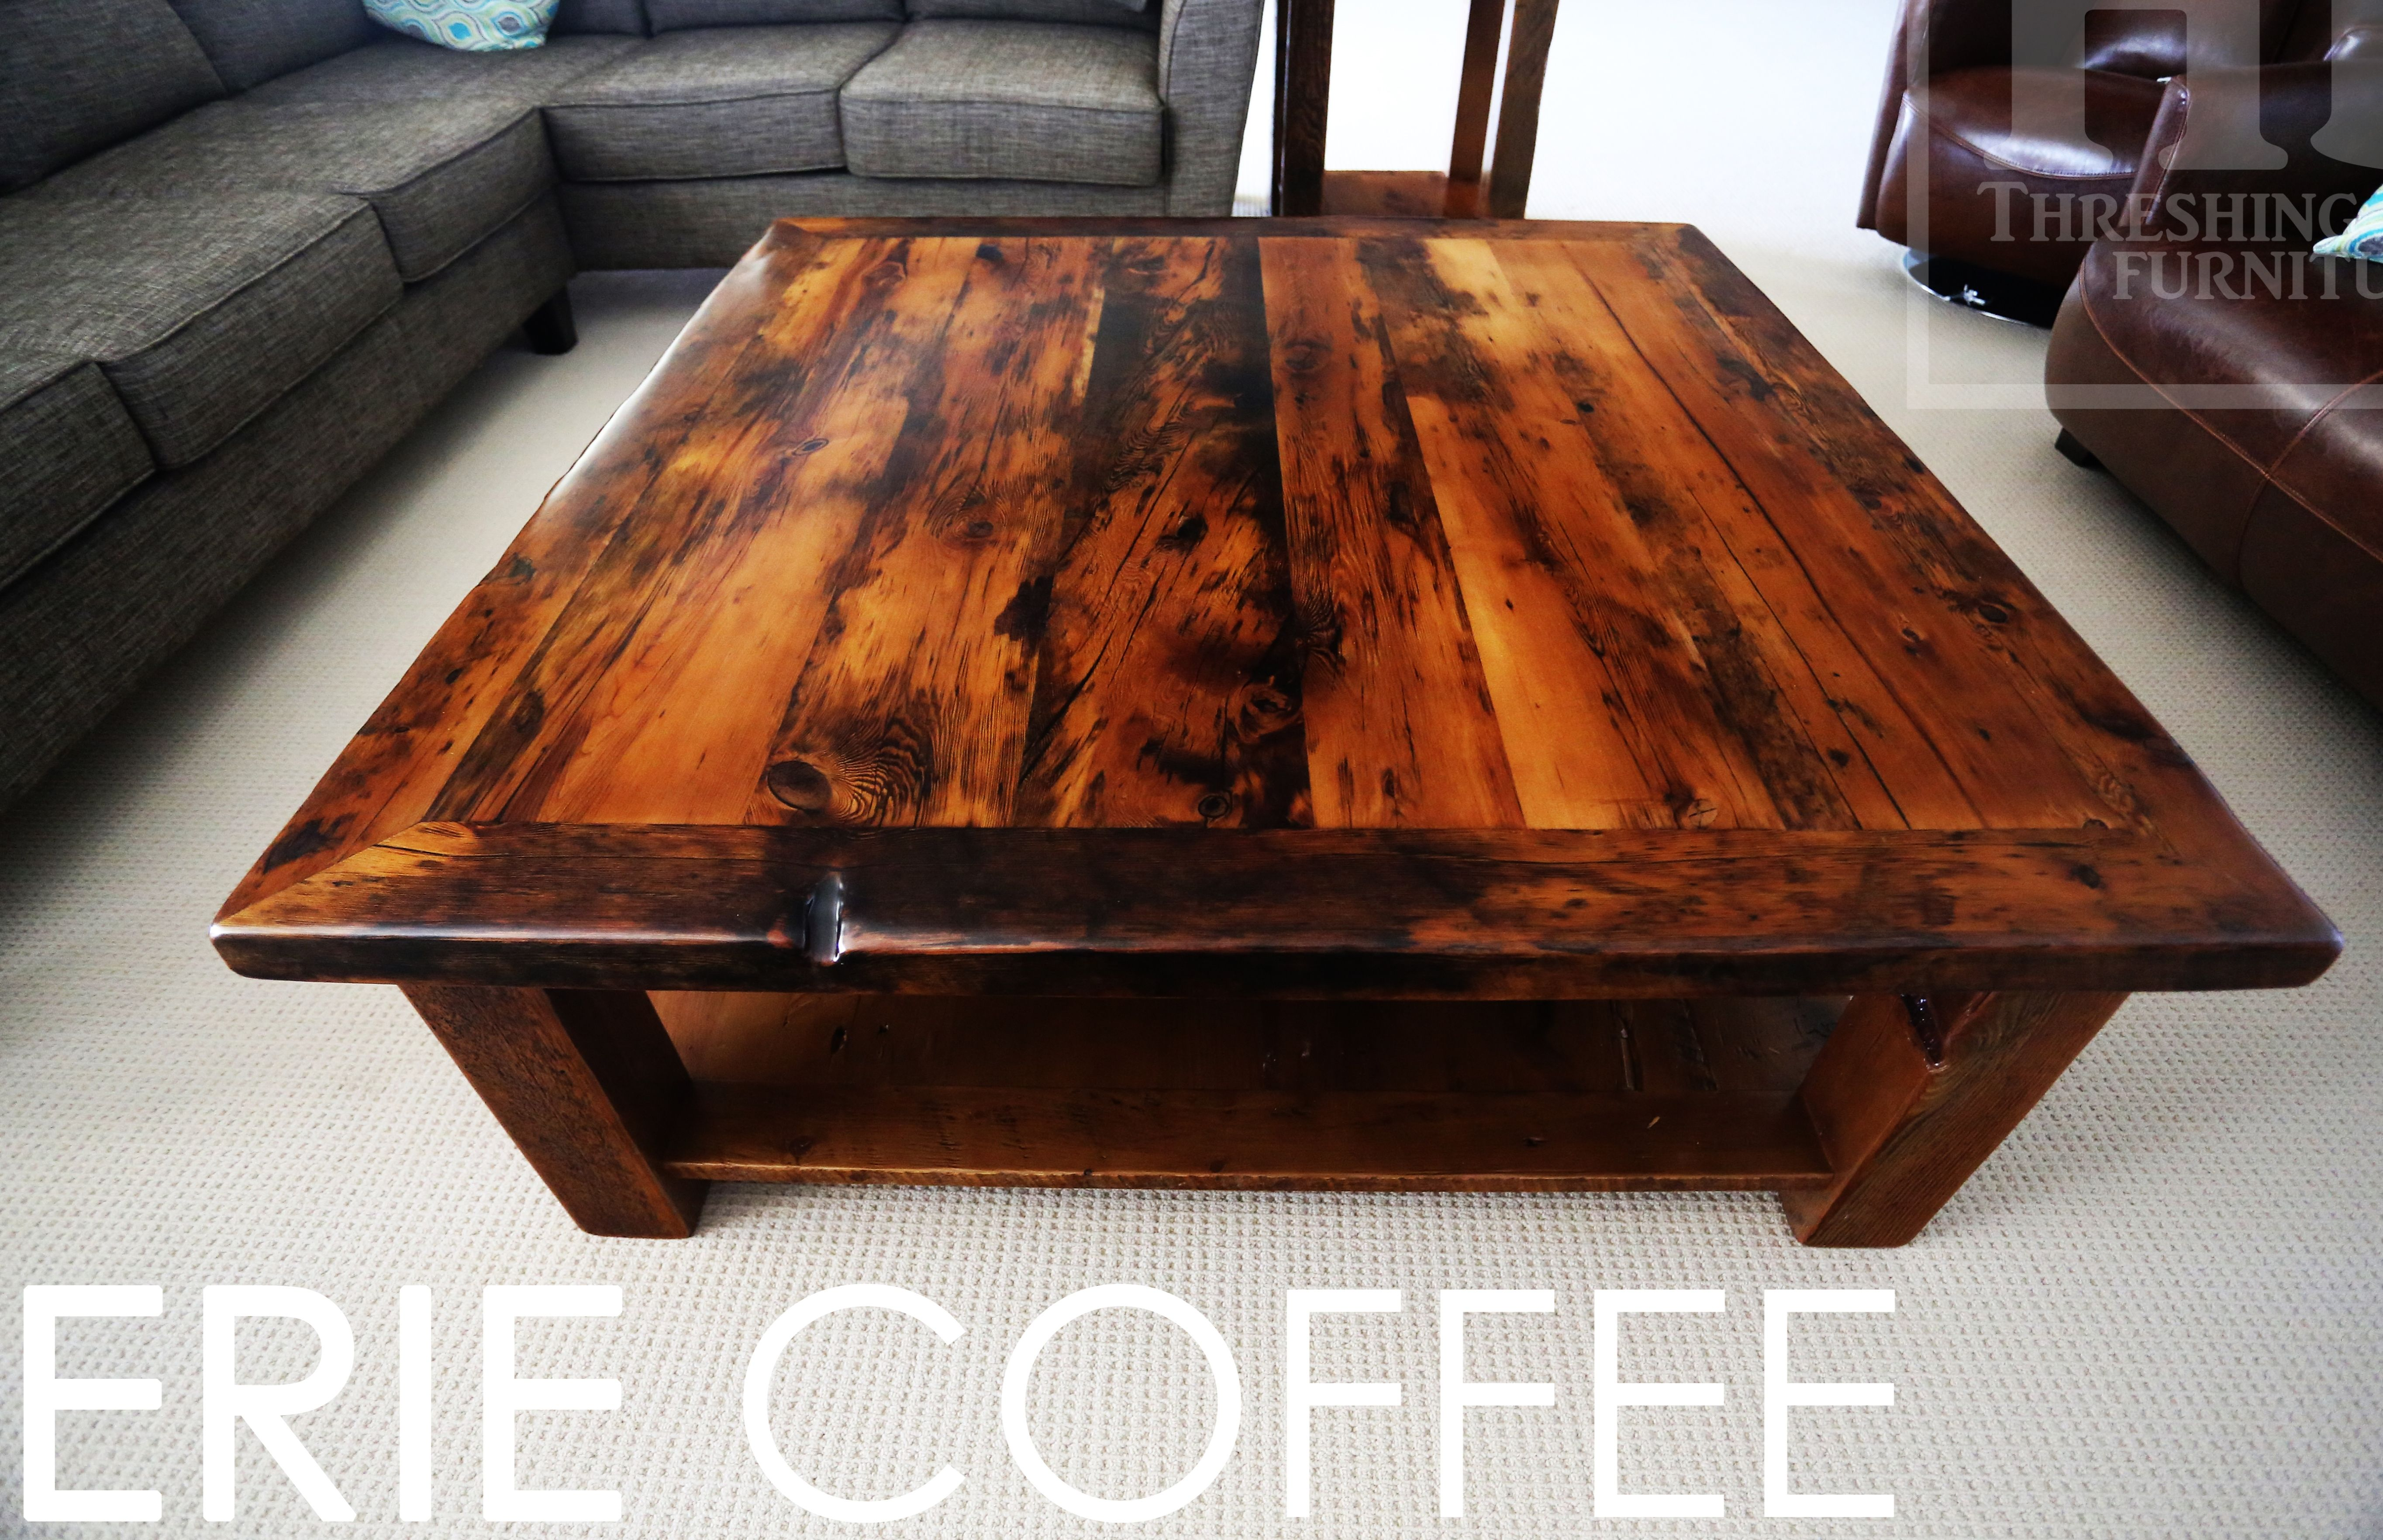 Reclaimed Wood Coffee Table By Hd Threshing Floor Furniture Of Cambridge Ontario Www Hdthreshing Email Directly At Rw Ca